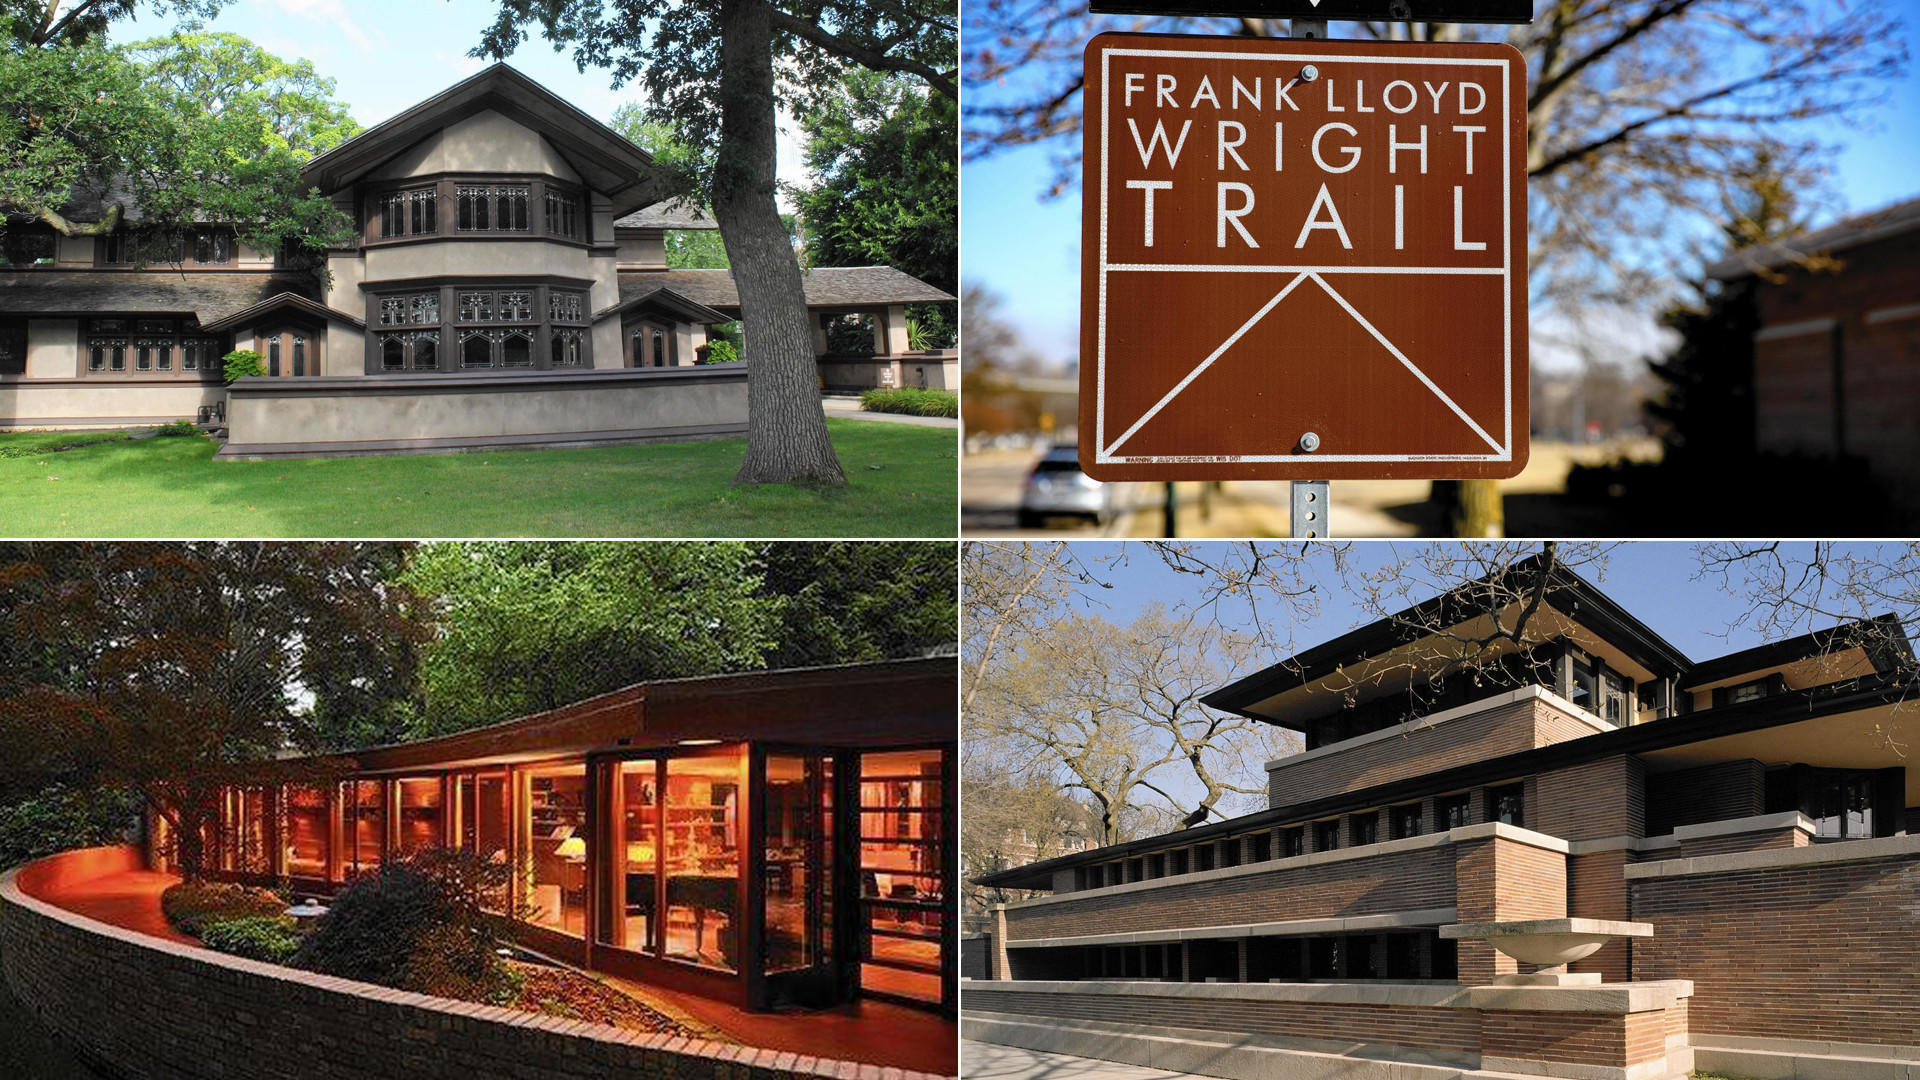 new frank lloyd wright trail unveiled 13 sites from rockford to springfield chicago tribune. Black Bedroom Furniture Sets. Home Design Ideas